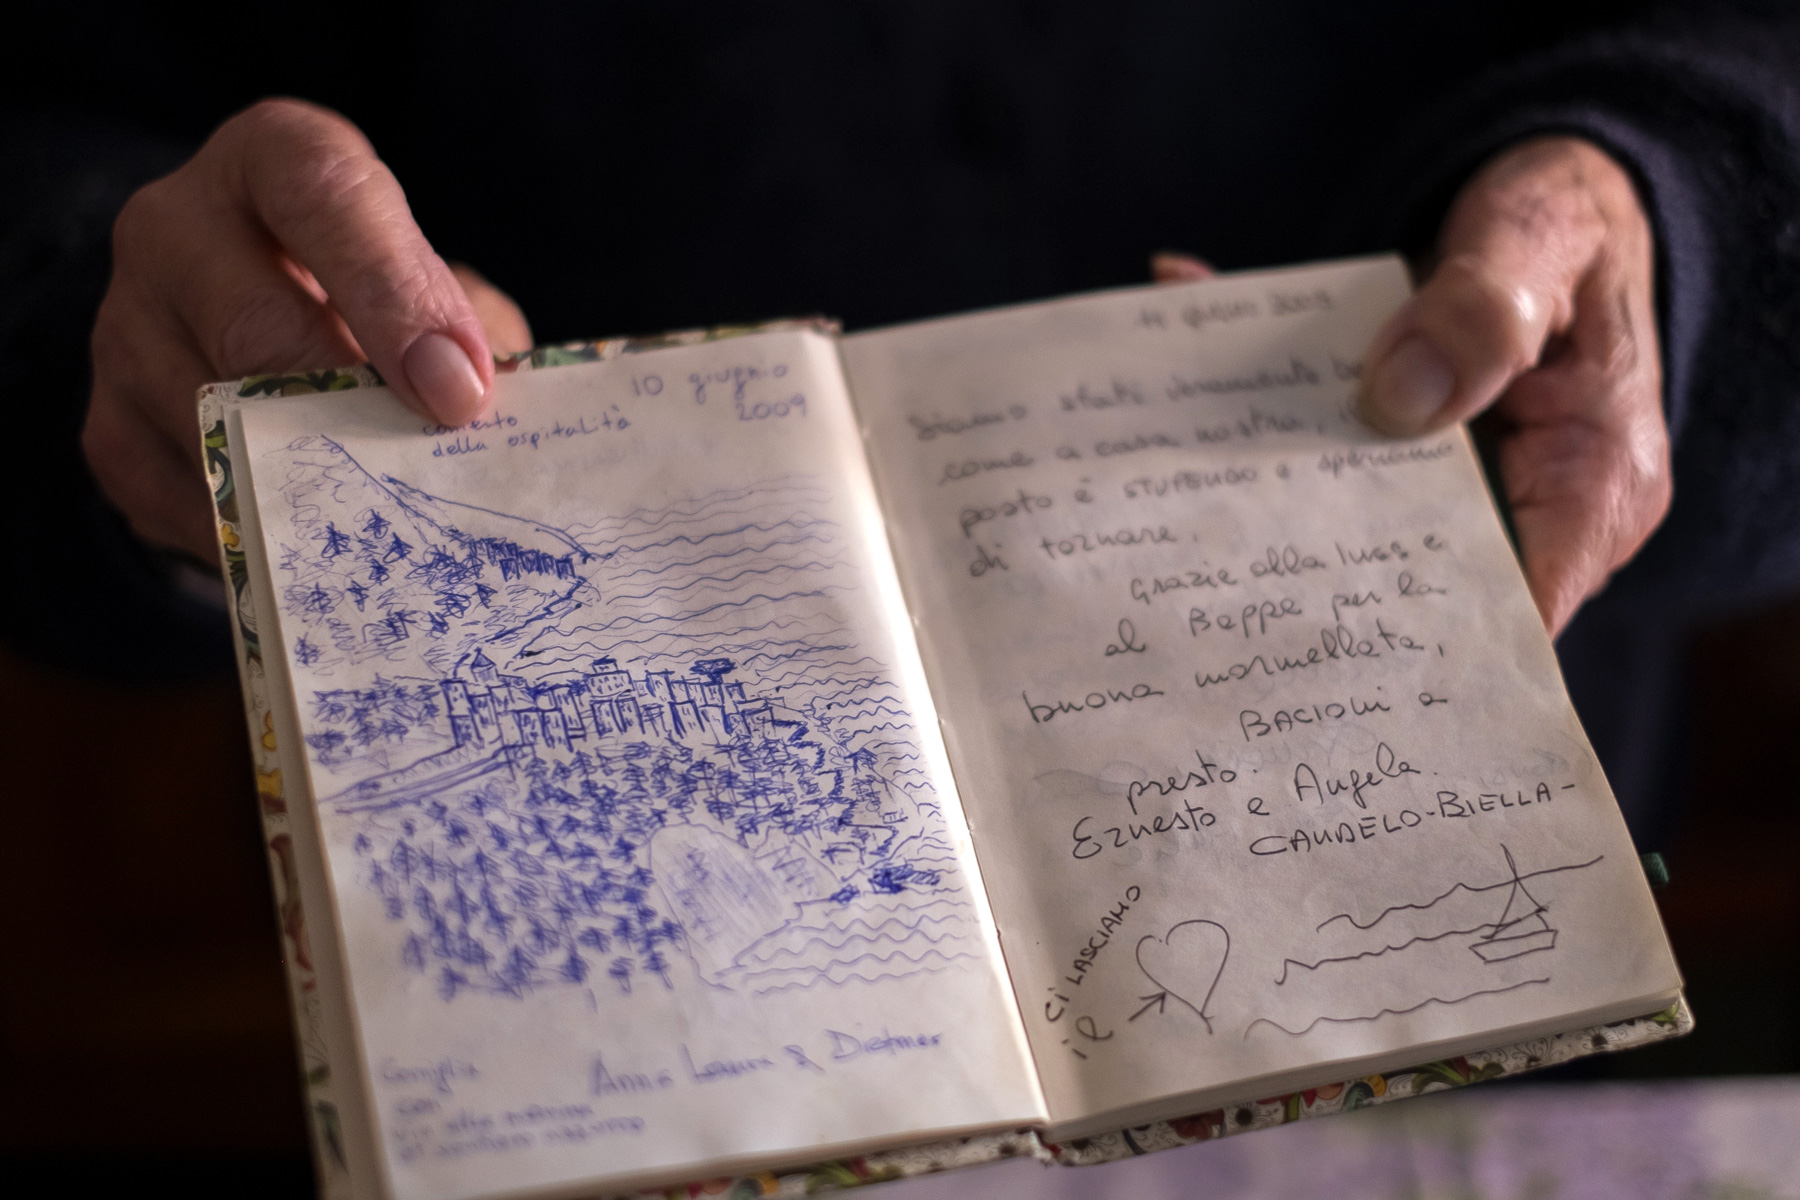 Ines shares her guestbook with us filled with notes and drawings left by guests since starting the B&B in 2000.